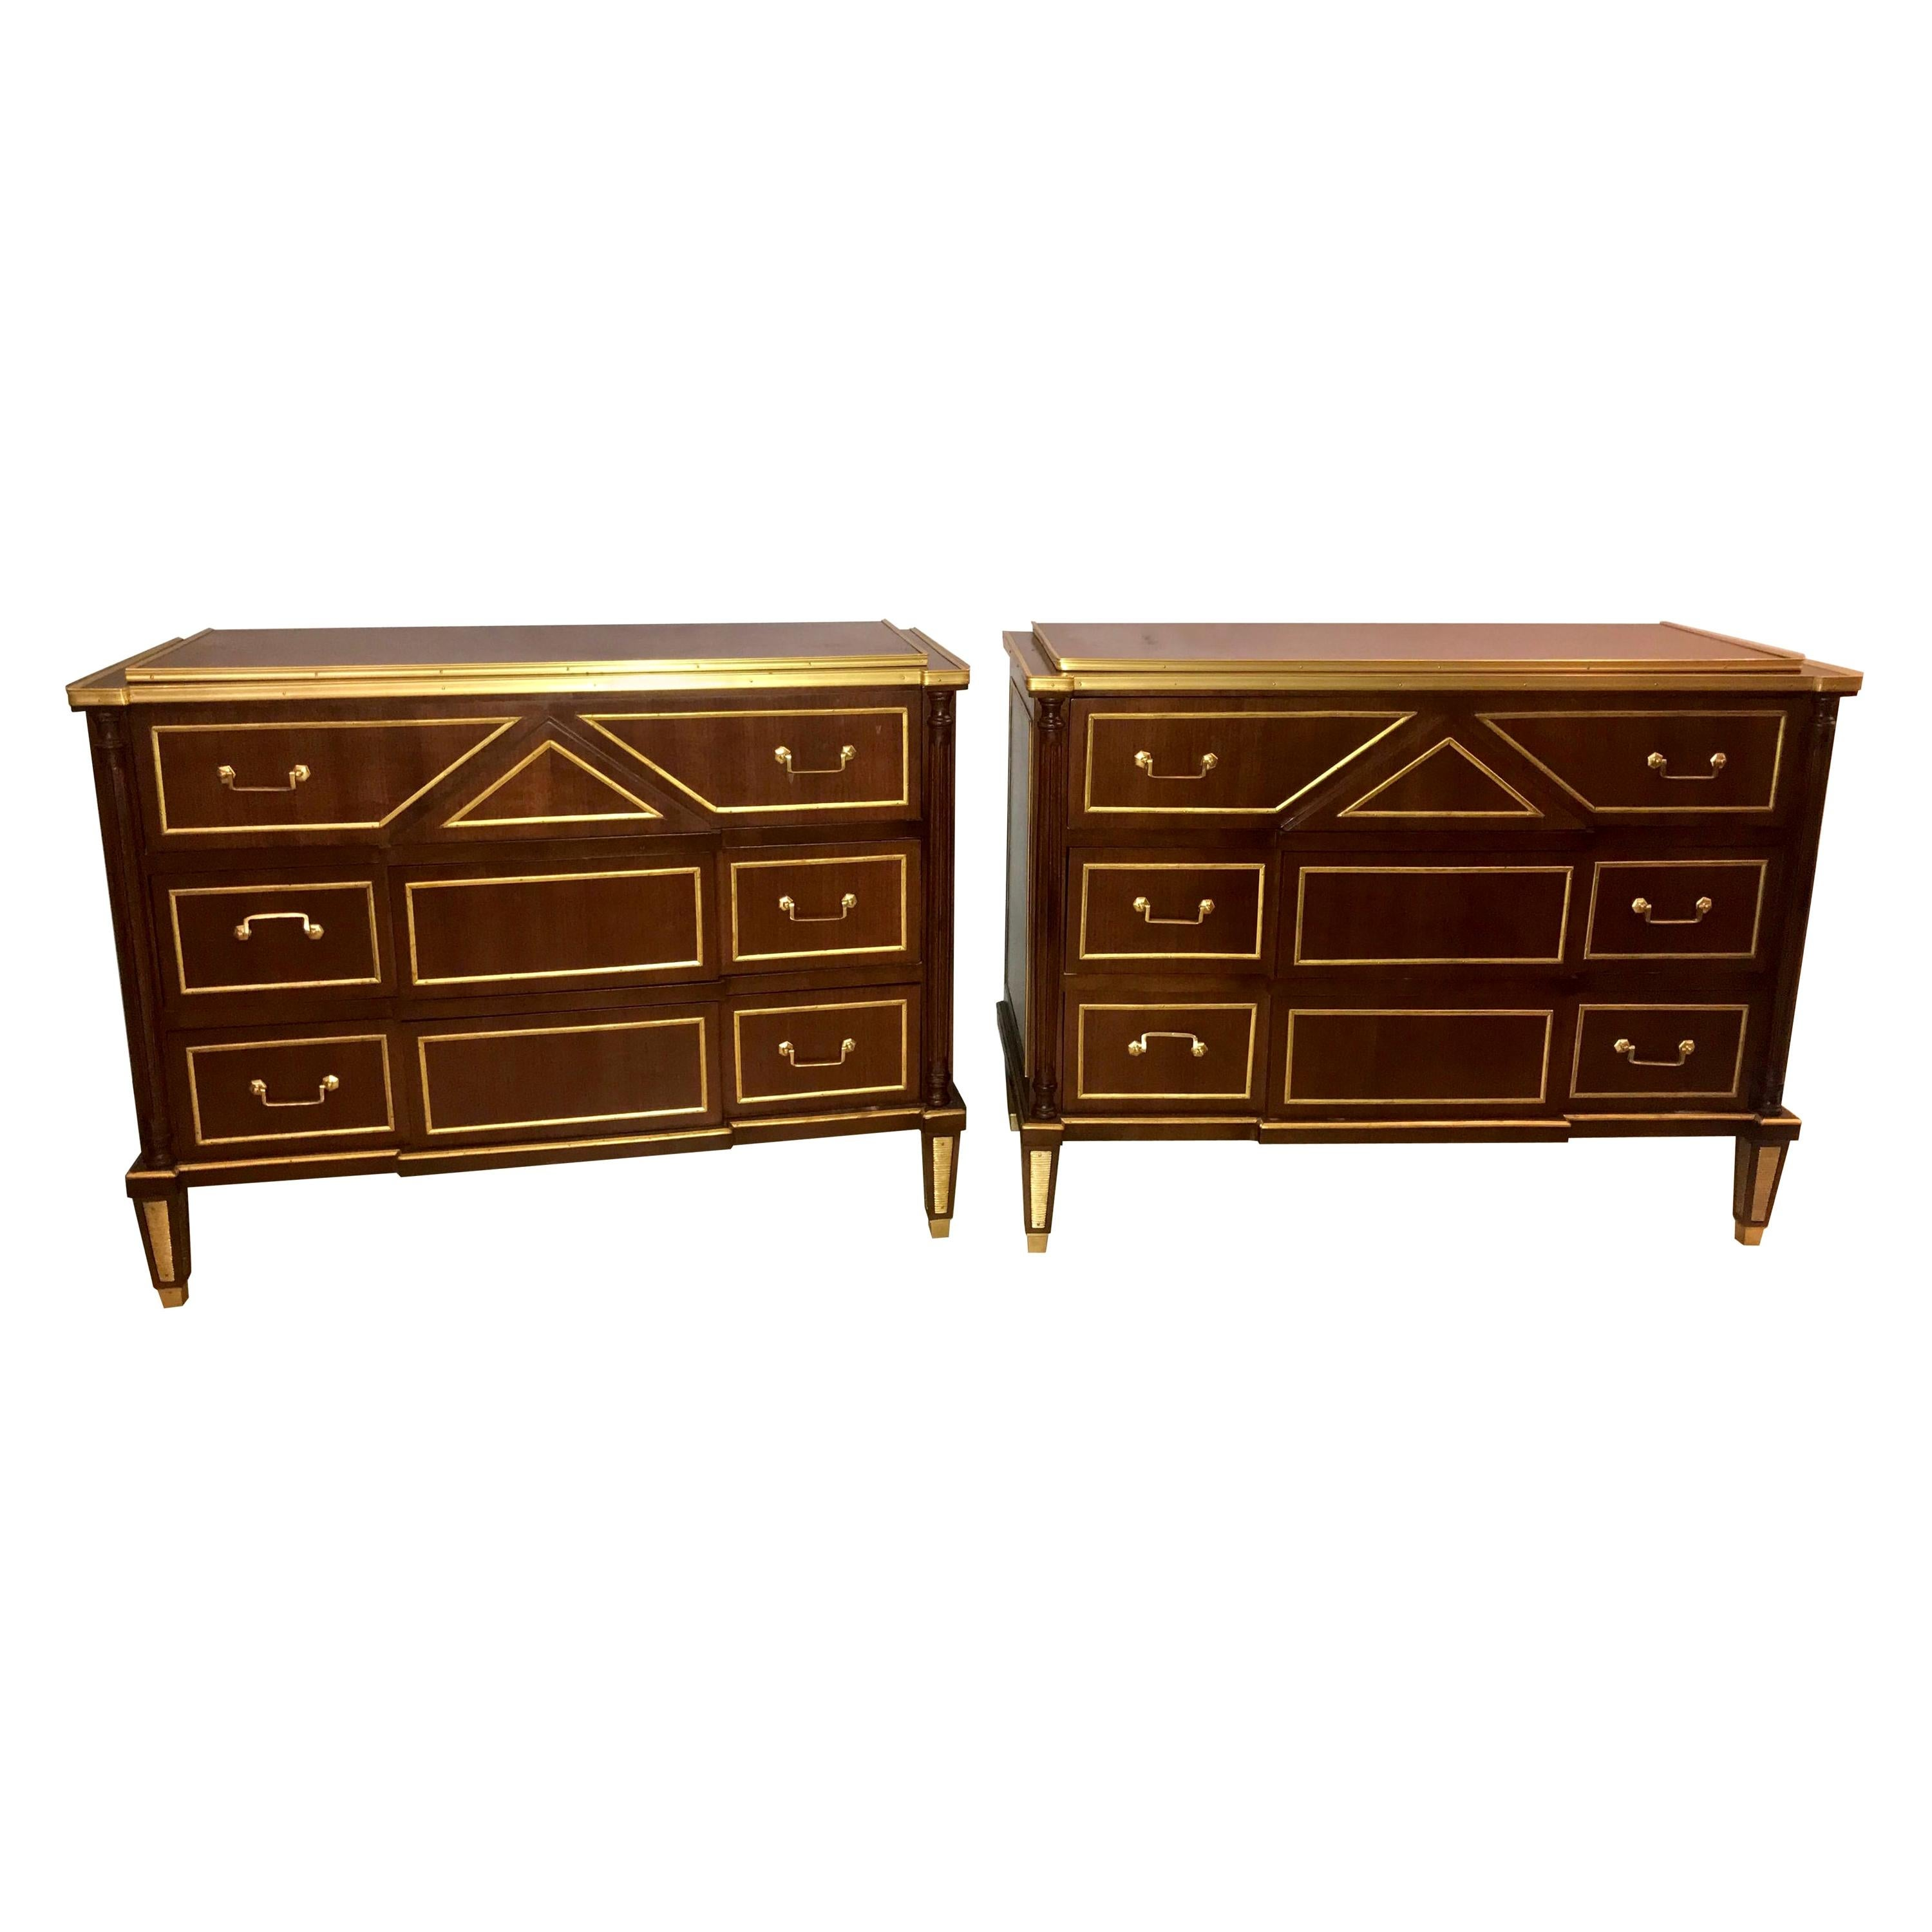 Pair of Russian Neoclassical Style Commodes / Bedside Nightstands or Servers